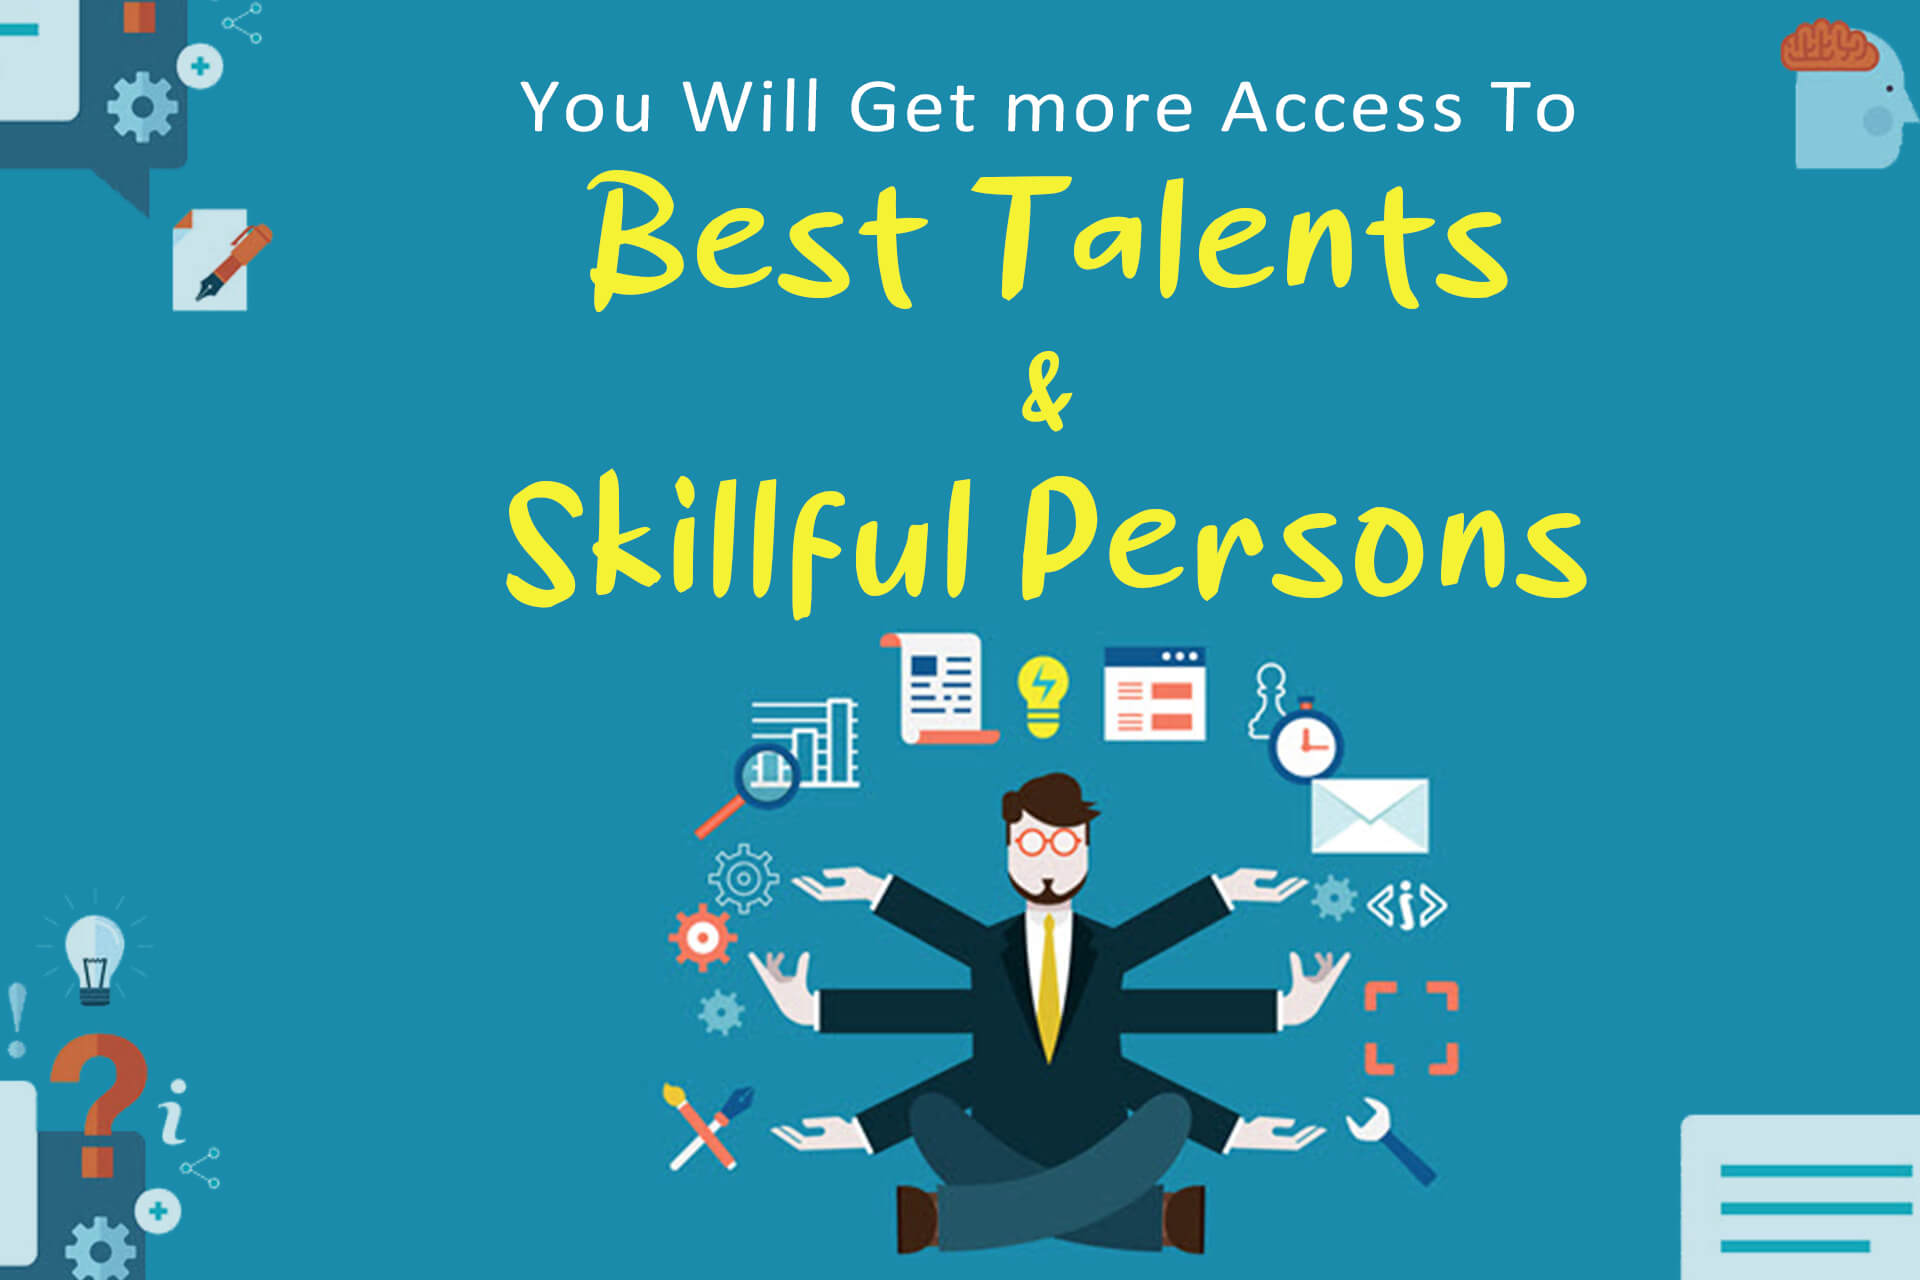 You Will Get more Access To Best Talents & Skillful Persons